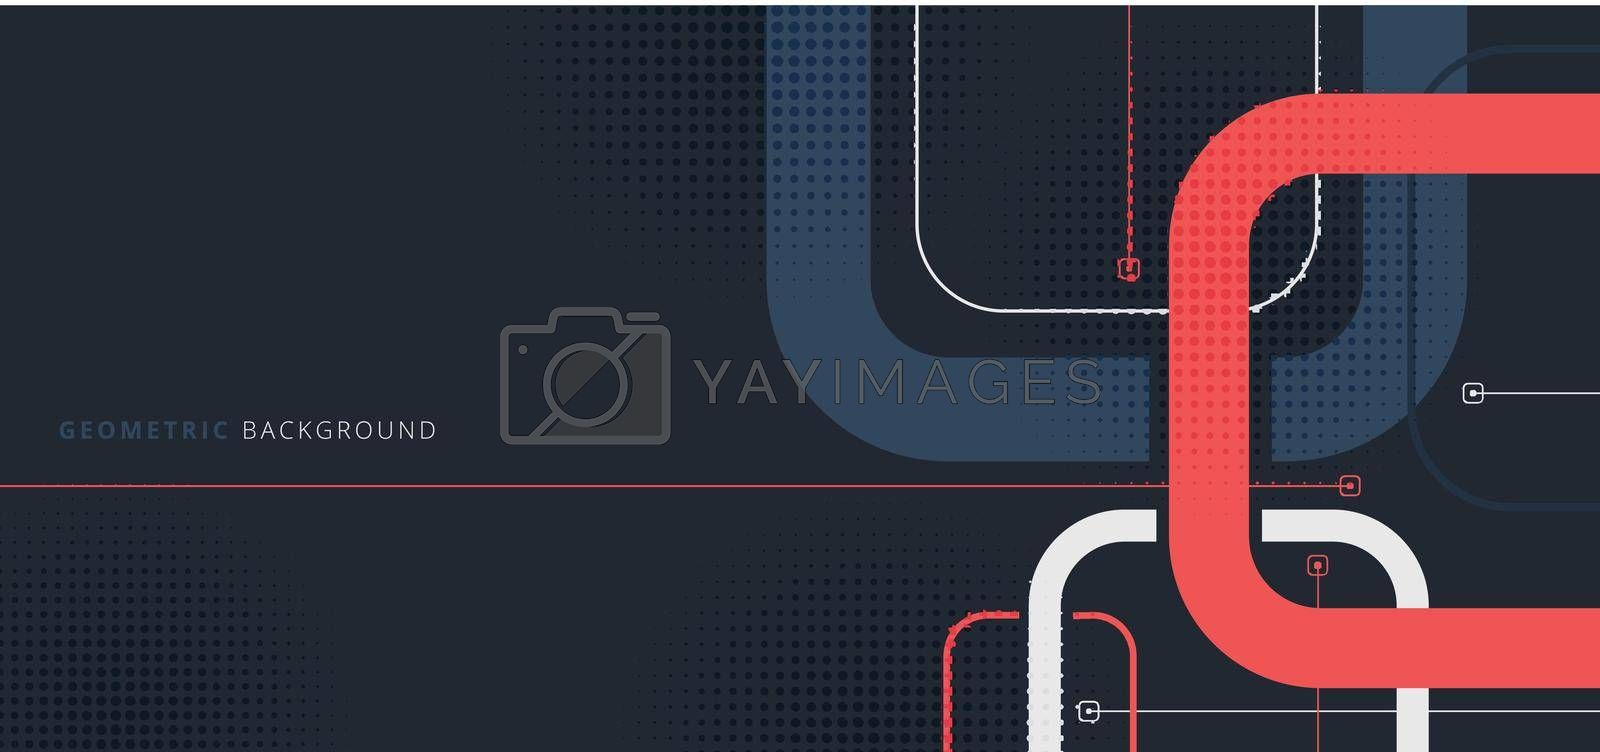 Banner web template design rounded squares geometric blue and red on black background with space for your text. Vector illustration